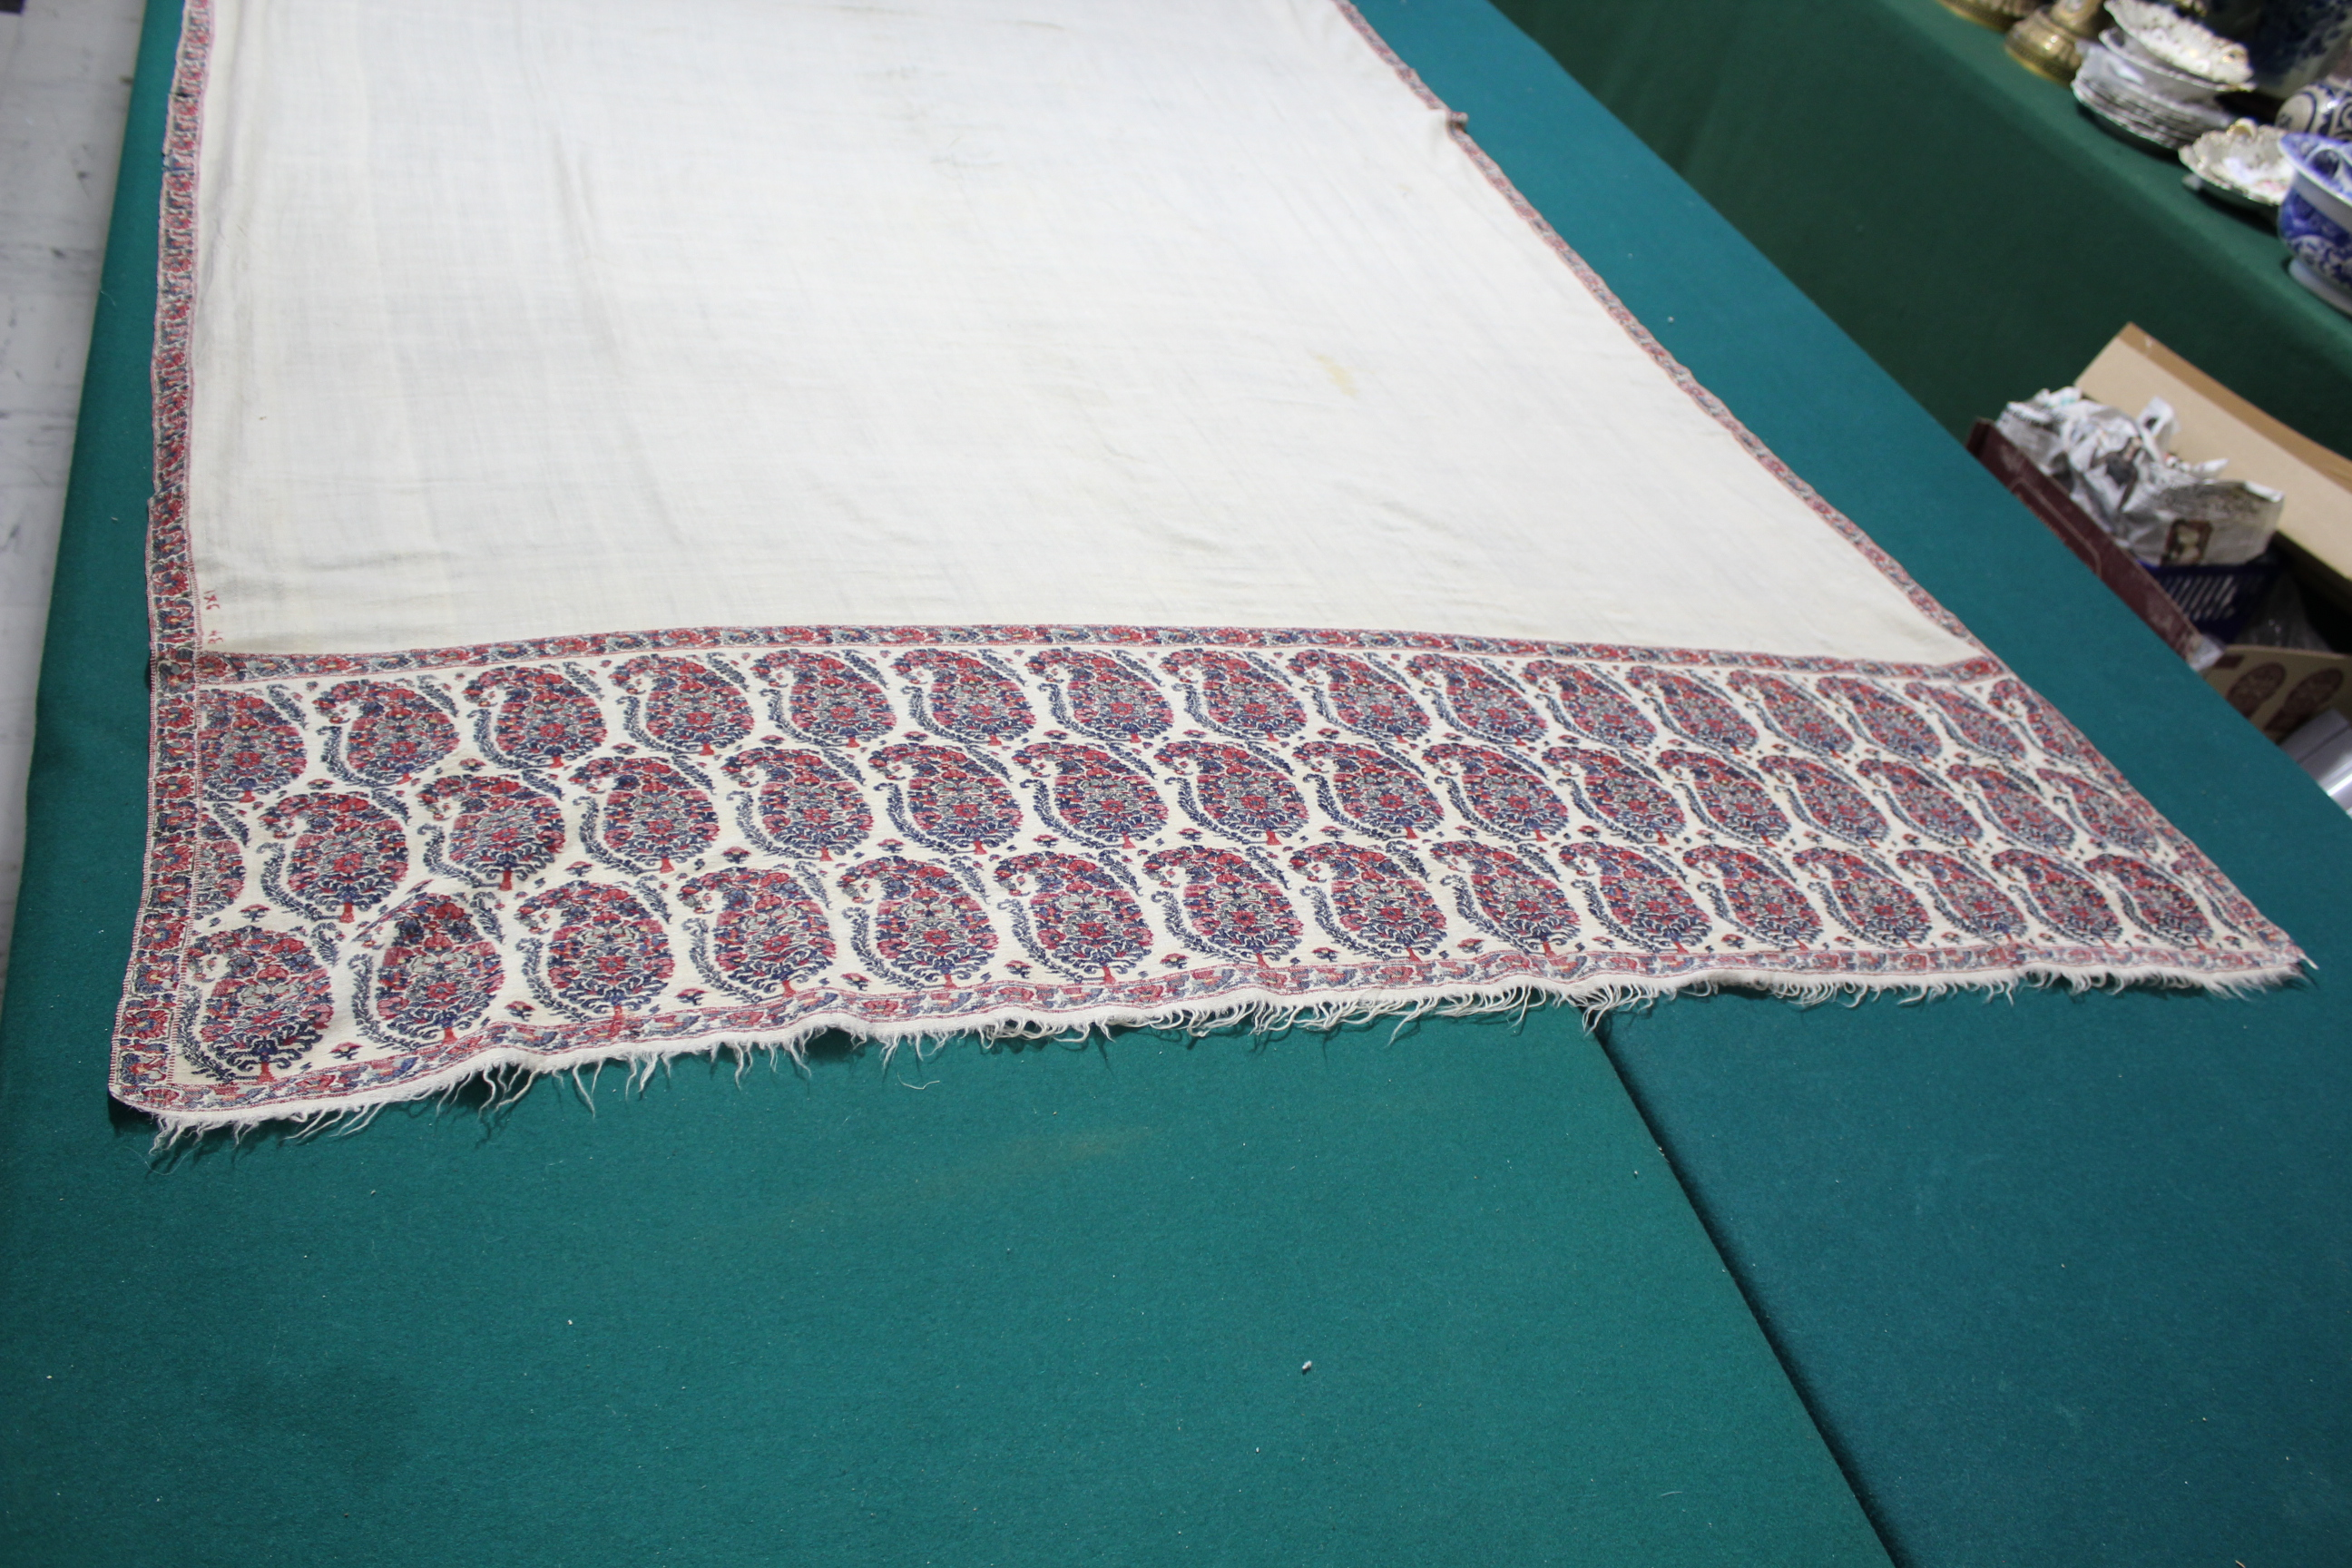 19THC PAISLEY SHAWL a mid 19thc paisley wool cashmere shawl (264cms by 126cms), and also with a fine - Image 4 of 9